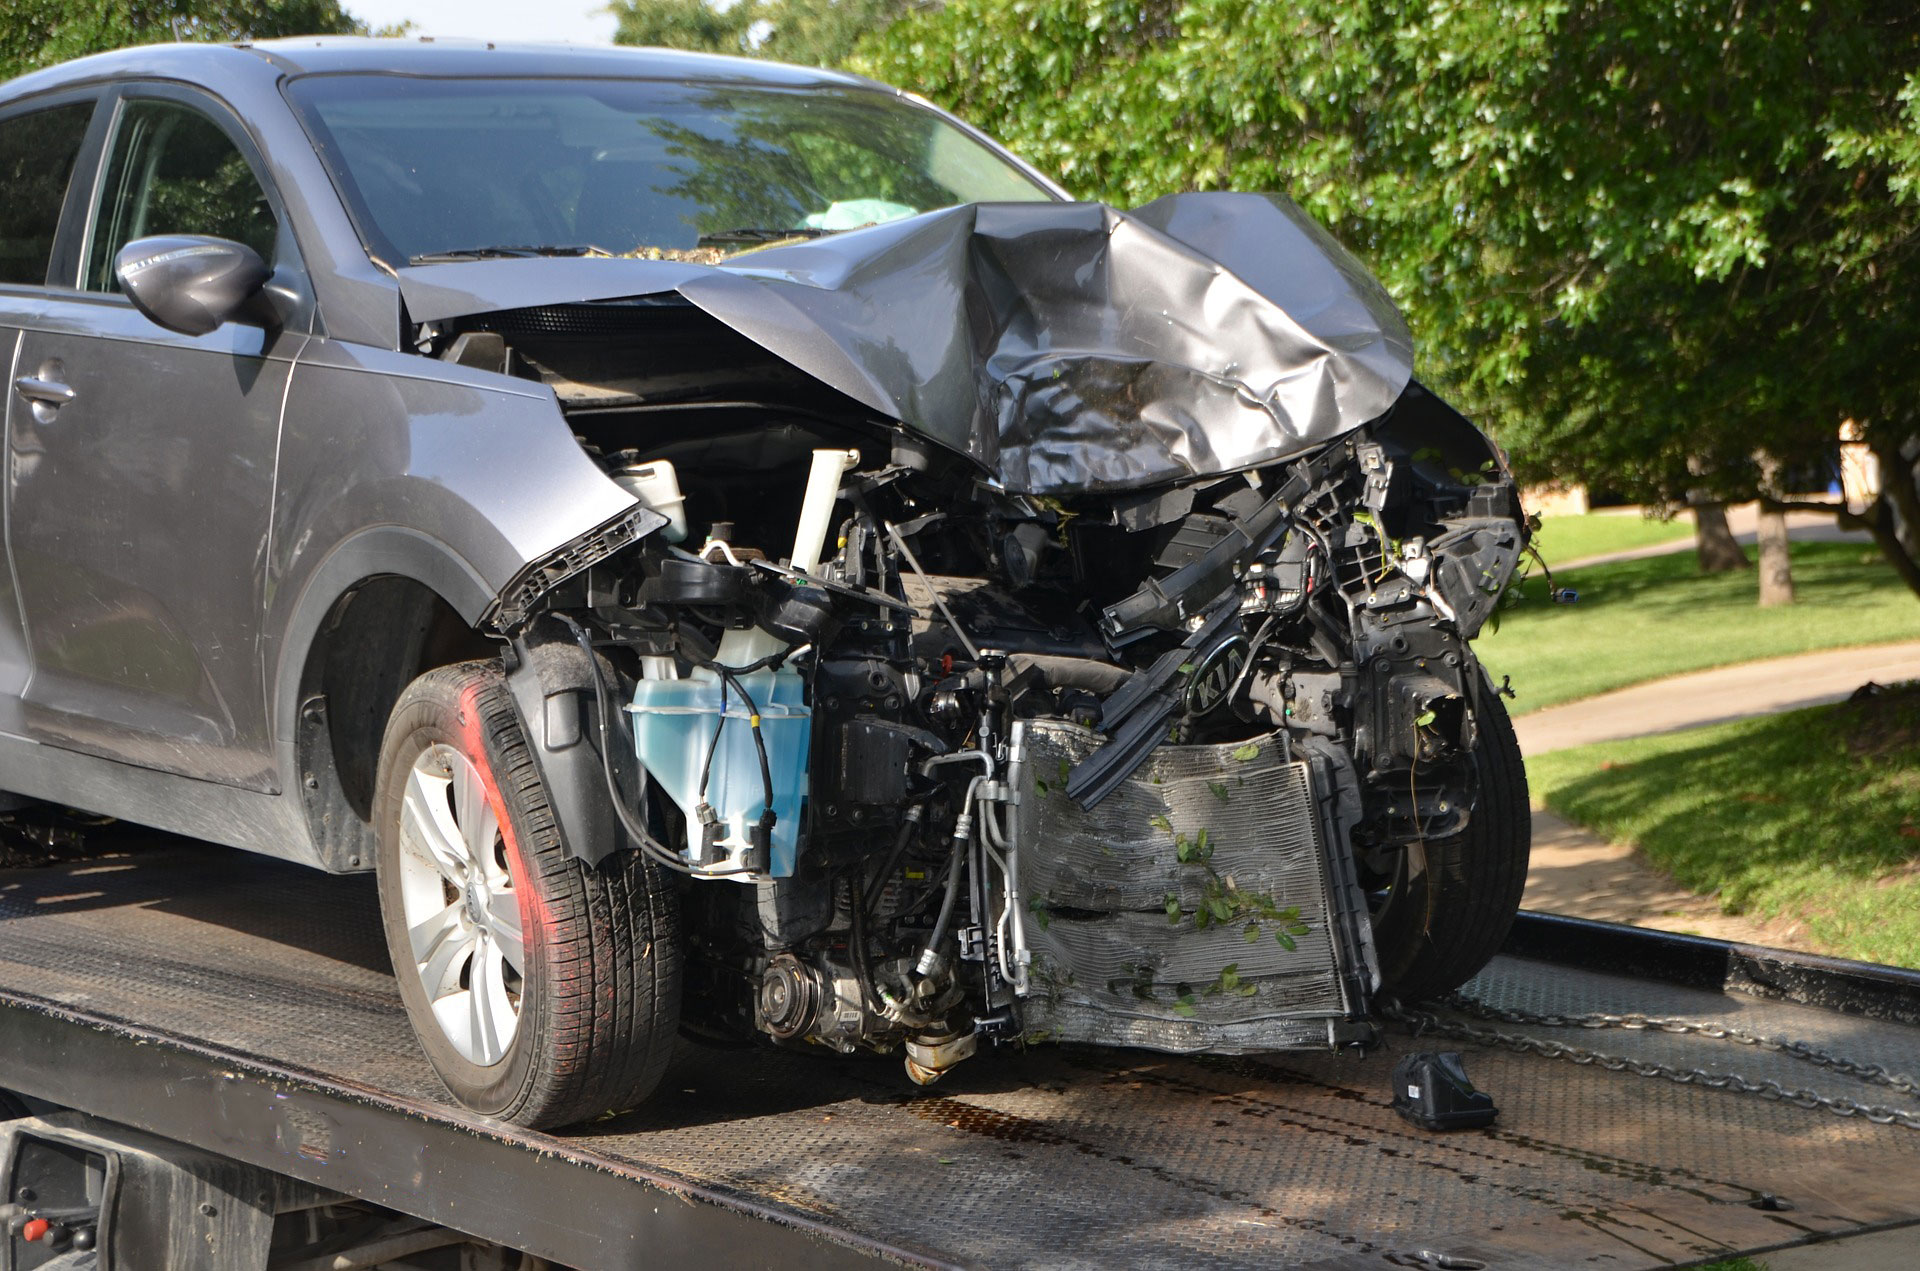 personal injury lawyer is needed after a car accident